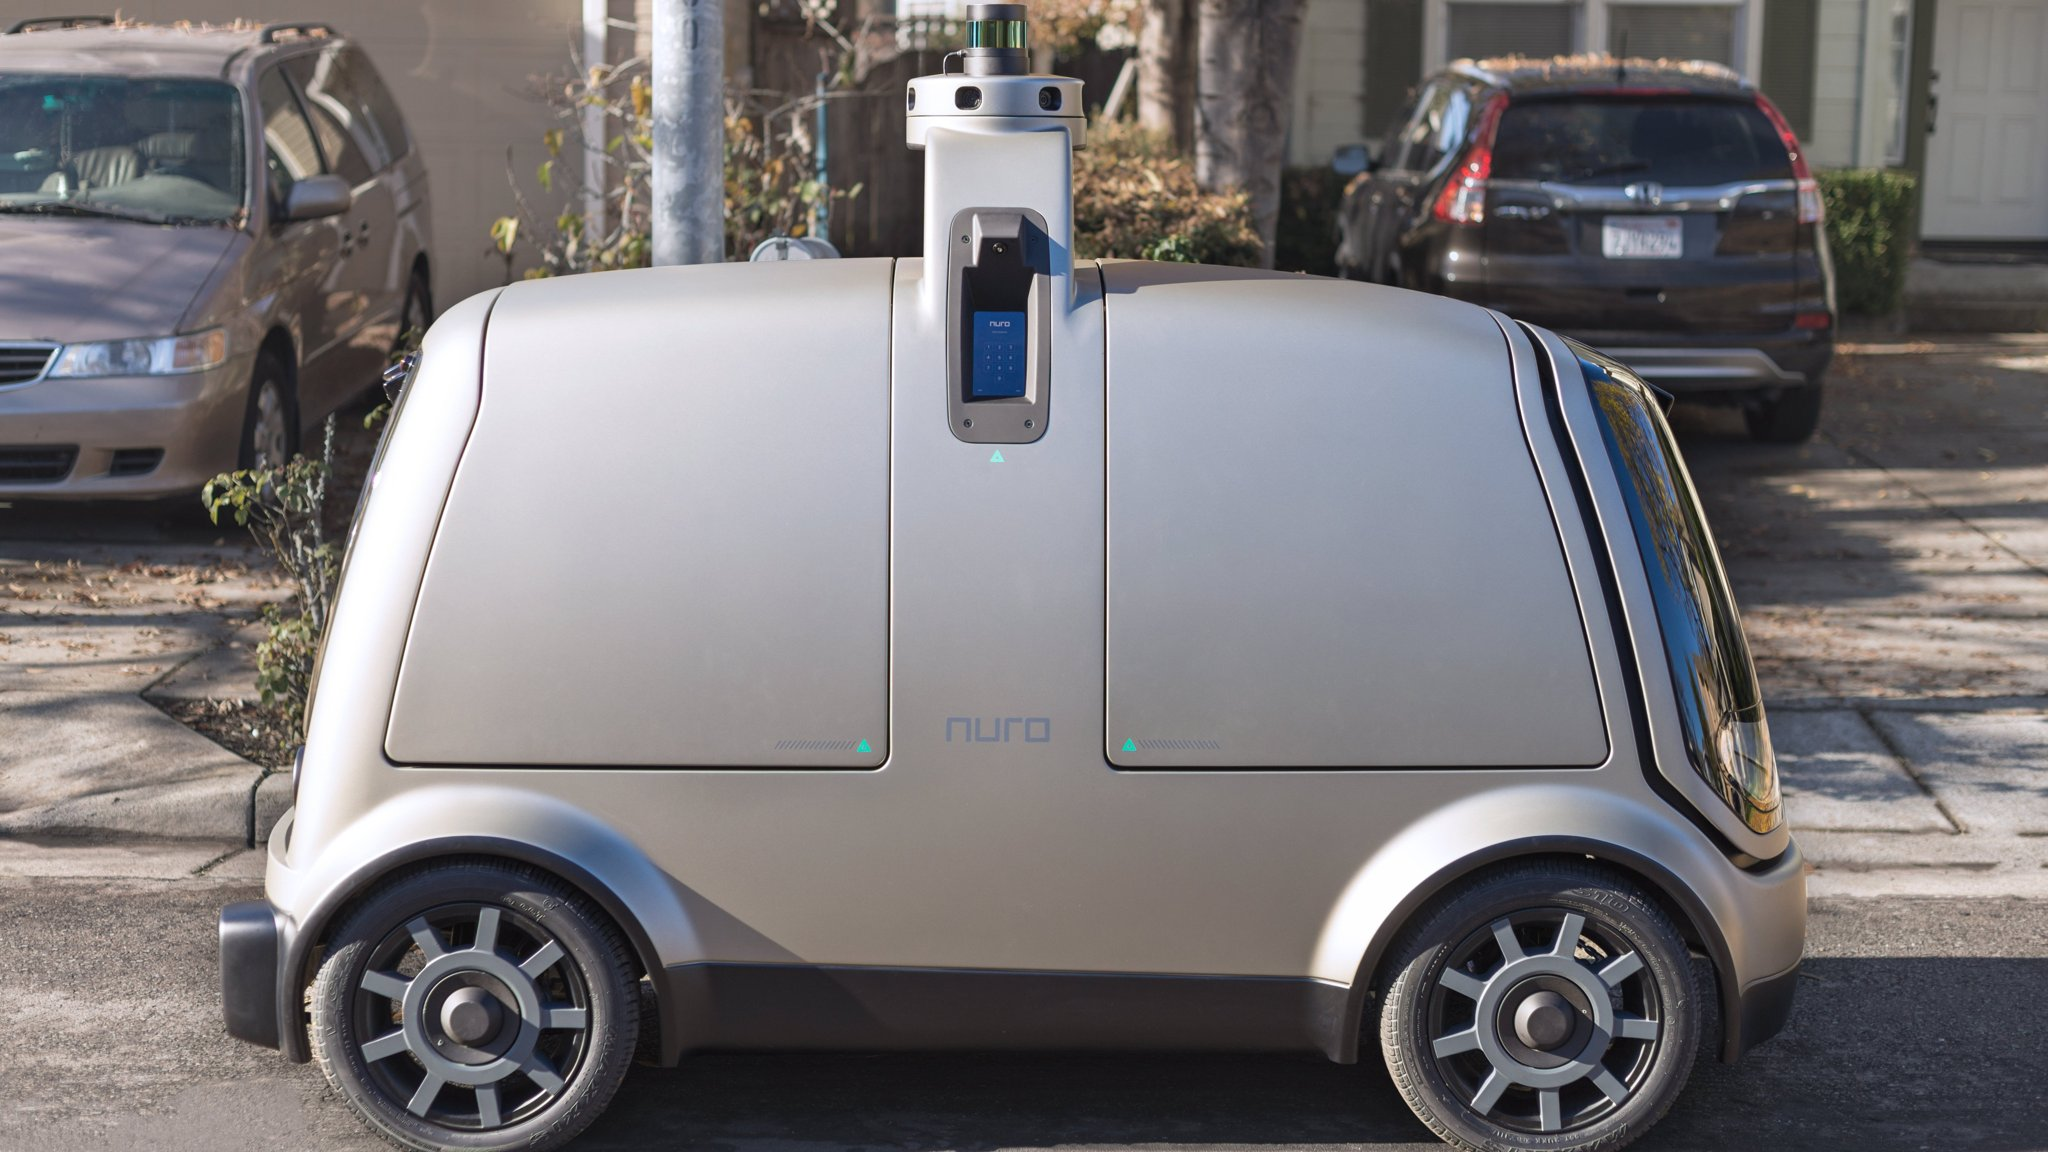 Silicon Valley start-ups race to win in driverless delivery market